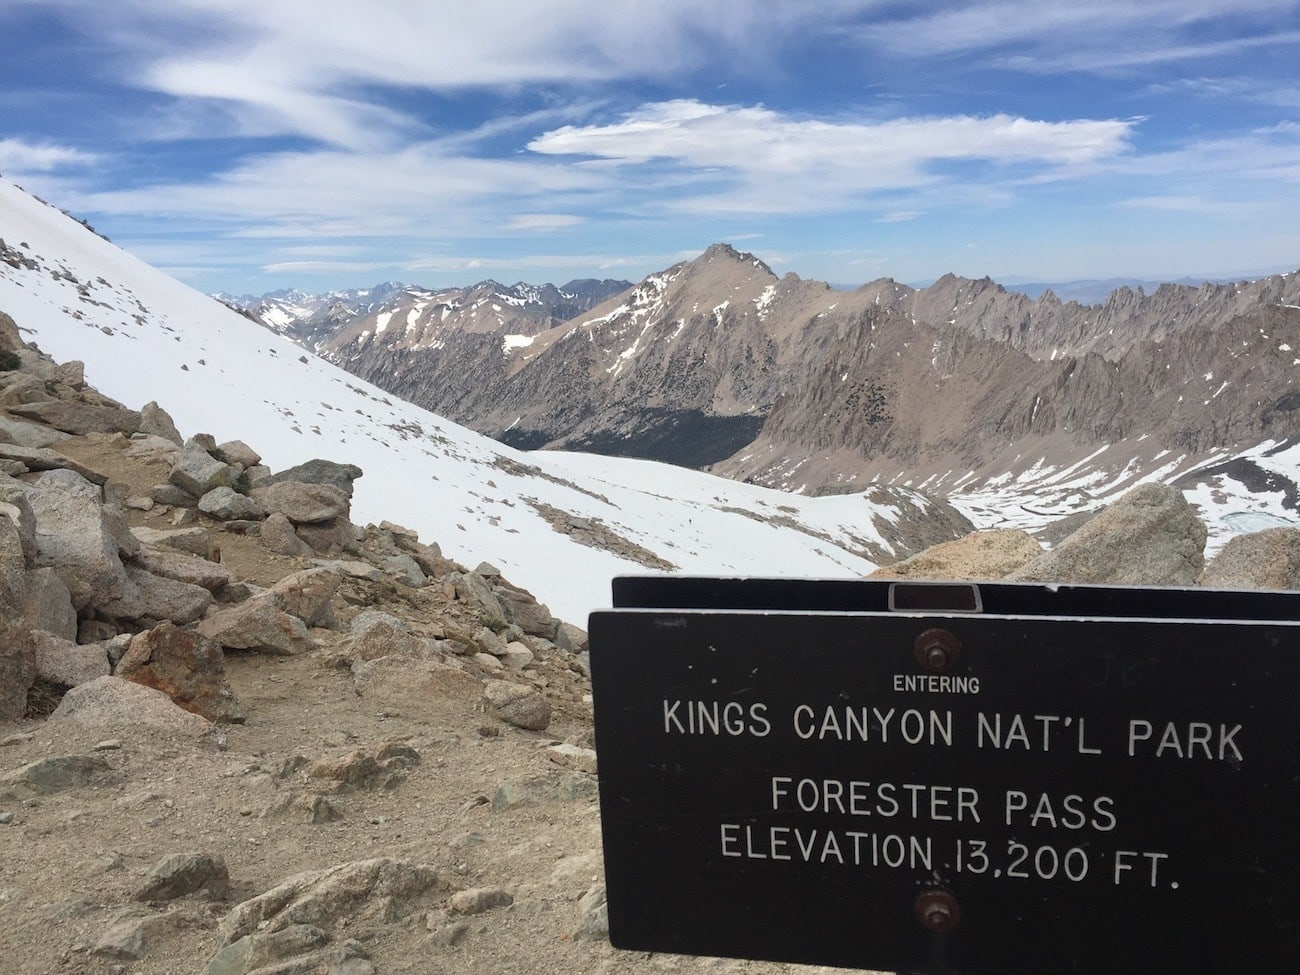 Training for a thru-hike requires mental and physical preparation. Learn how to get ready with these tips from a PCT and JMT thru-hiker.